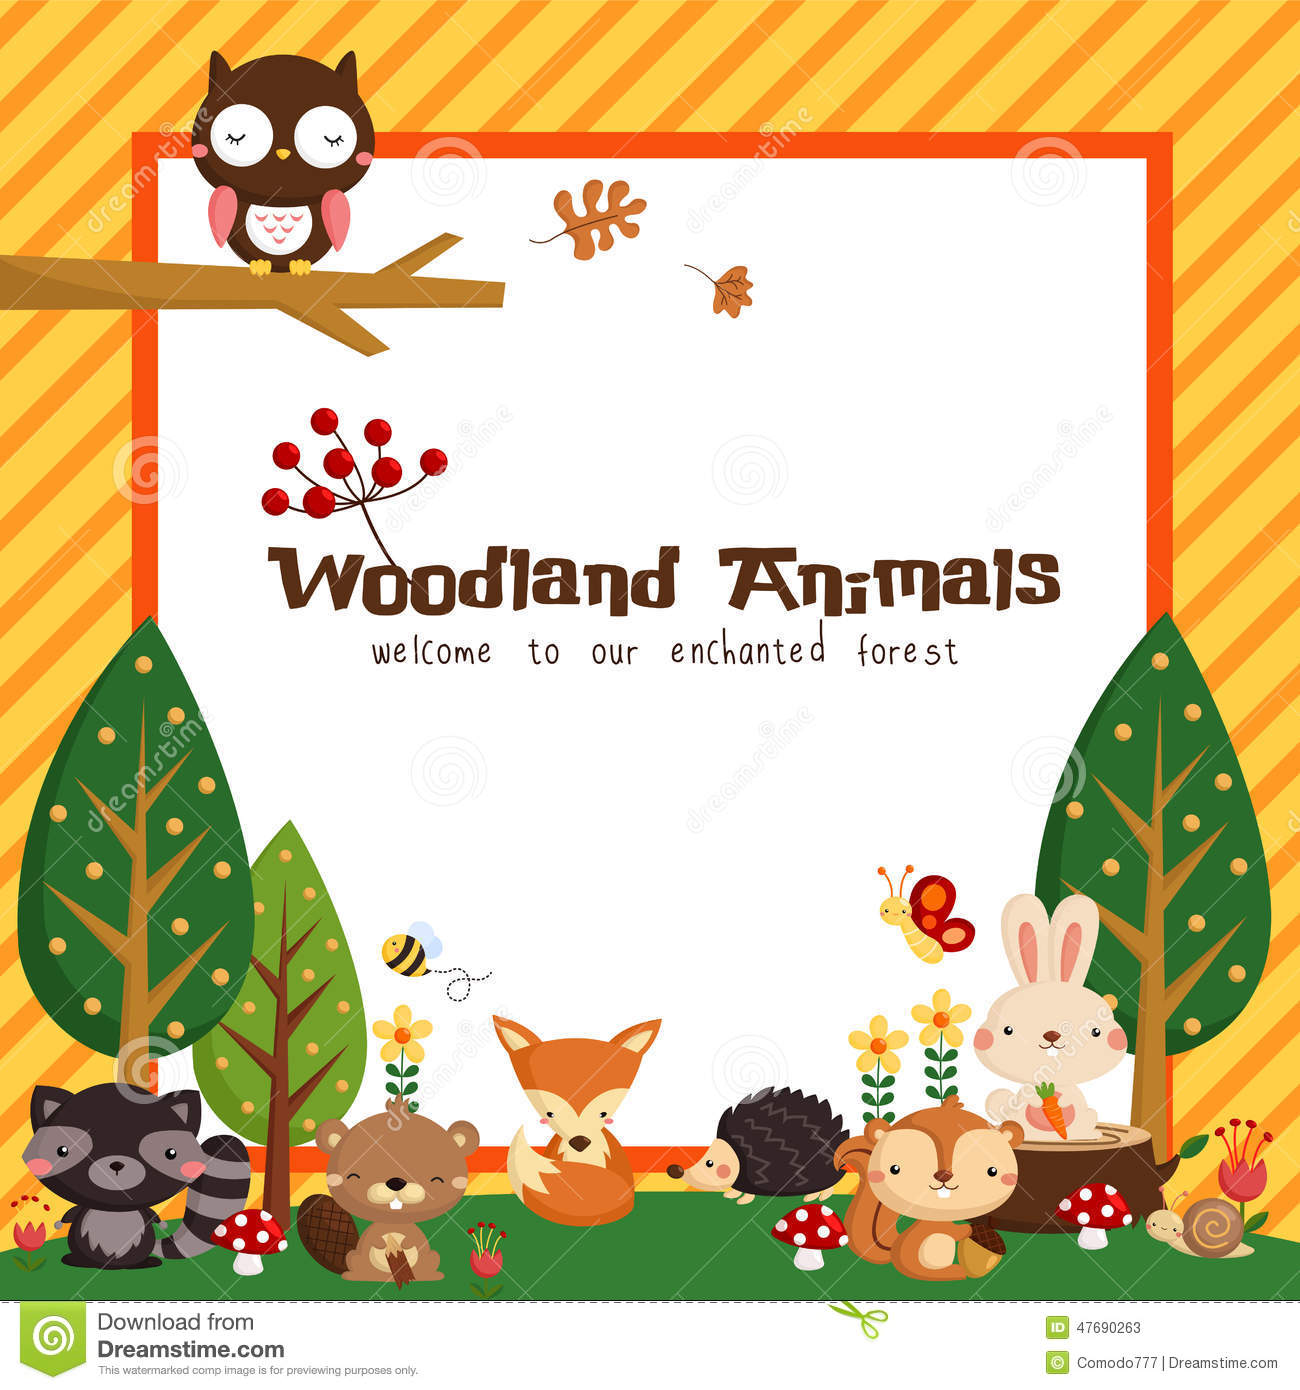 F D D Cd Bd Dbb D C B in addition Forest Clipart Forrest moreover Woodland Animal Card additionally D C Db A Bde D moreover Eb E C C E Af B A. on woodland sheerwood forest animals clip